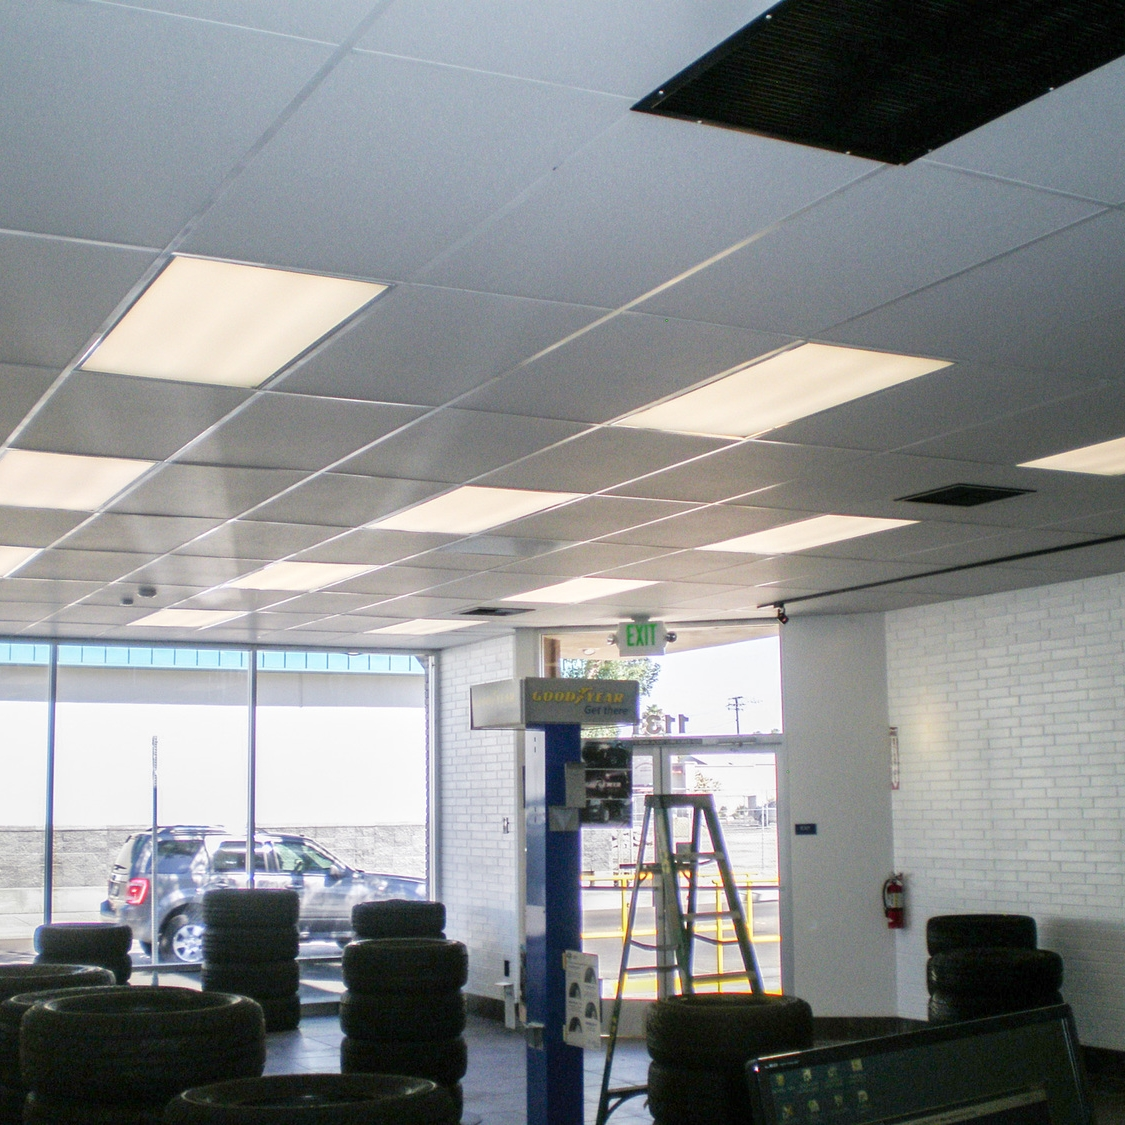 Commercial-Show-Room-Lights.jpg